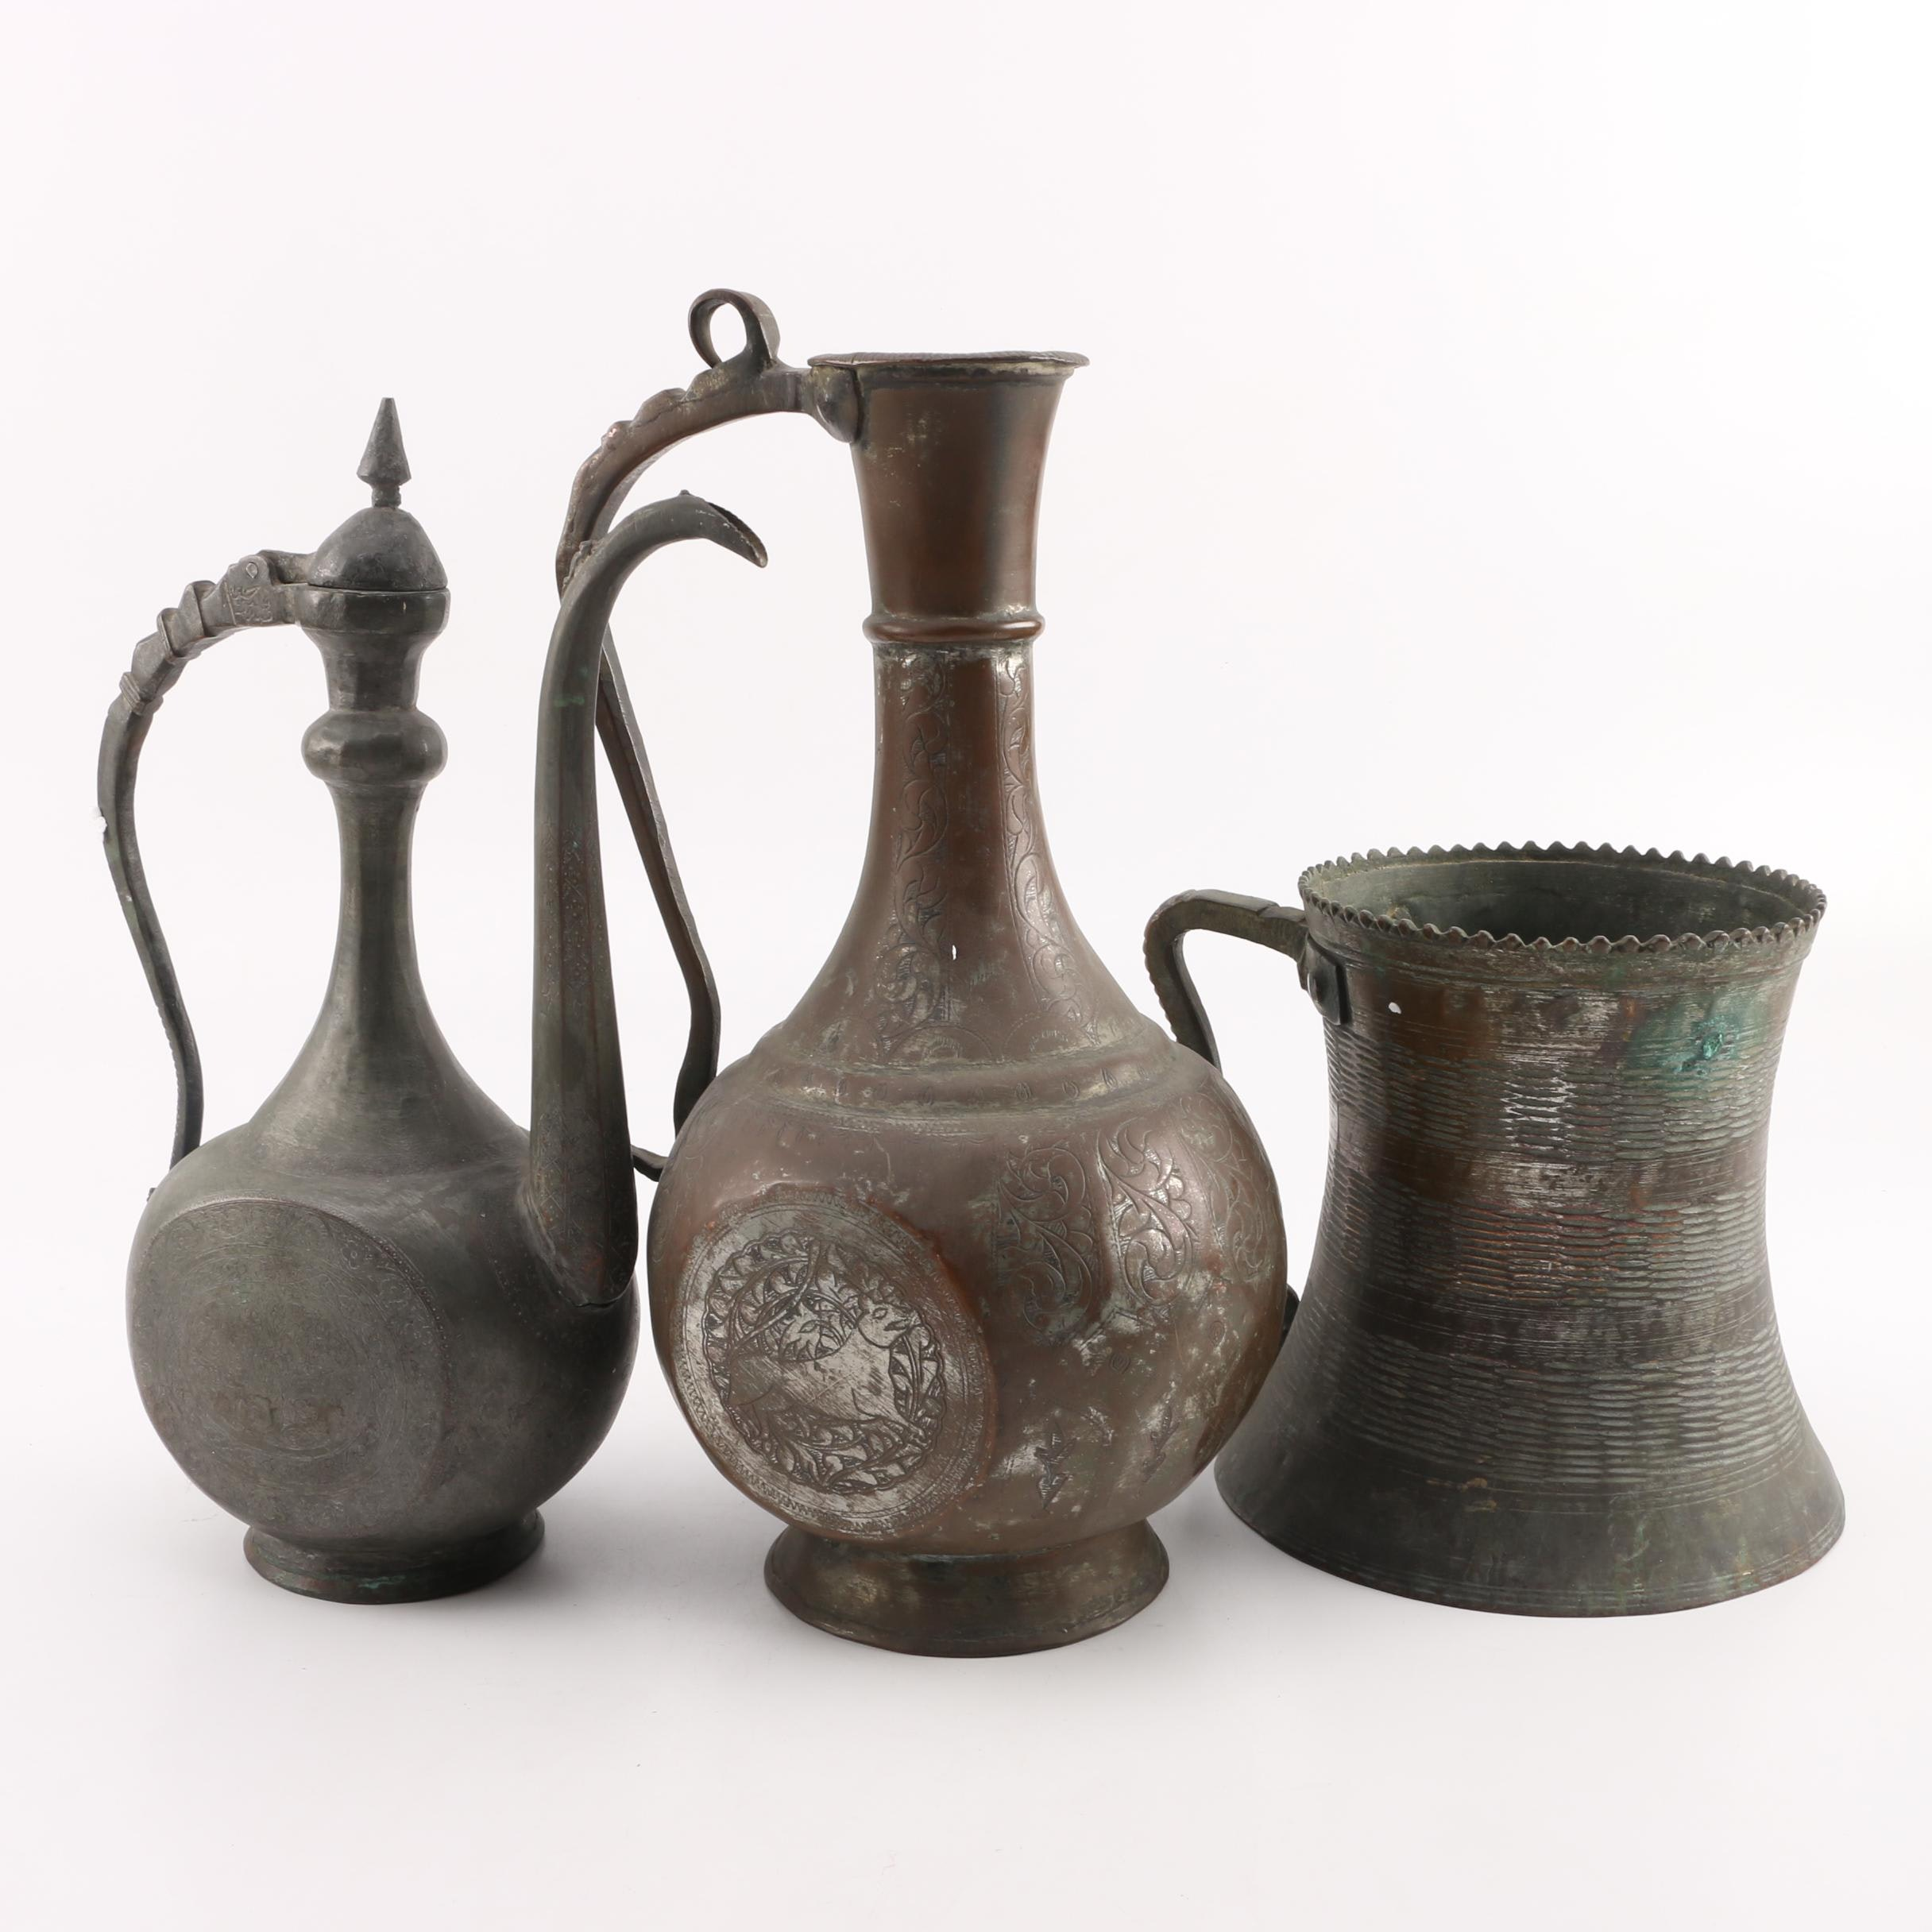 Antique Persian Coffee Pot, Ewer and Tankard